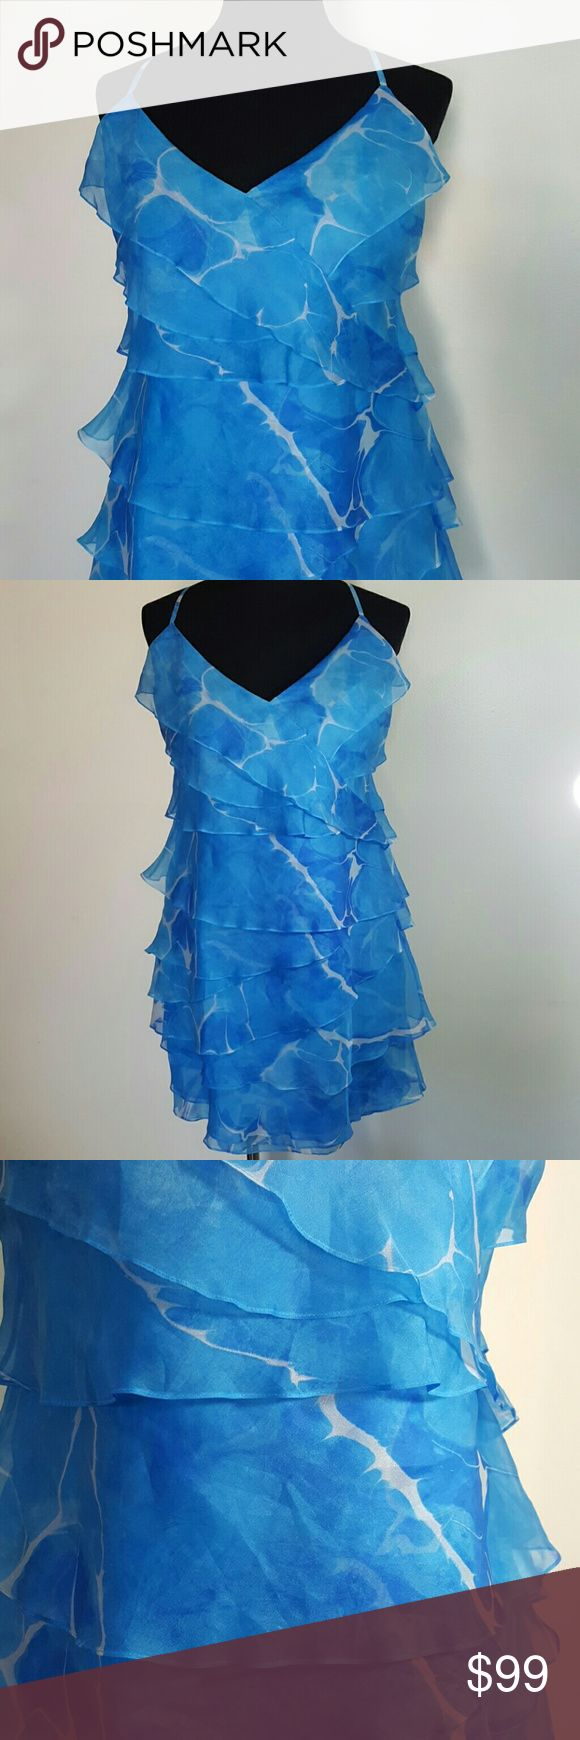 Ralph Lauren Marble Petal Pleated Cocktail Dress Size 12 Ralph Lauren  Marble blue petal pleated dress Side zipper  Spaghetti straps  V- neckline  Good condition - please note stain in photo 7 Ralph Lauren Dresses